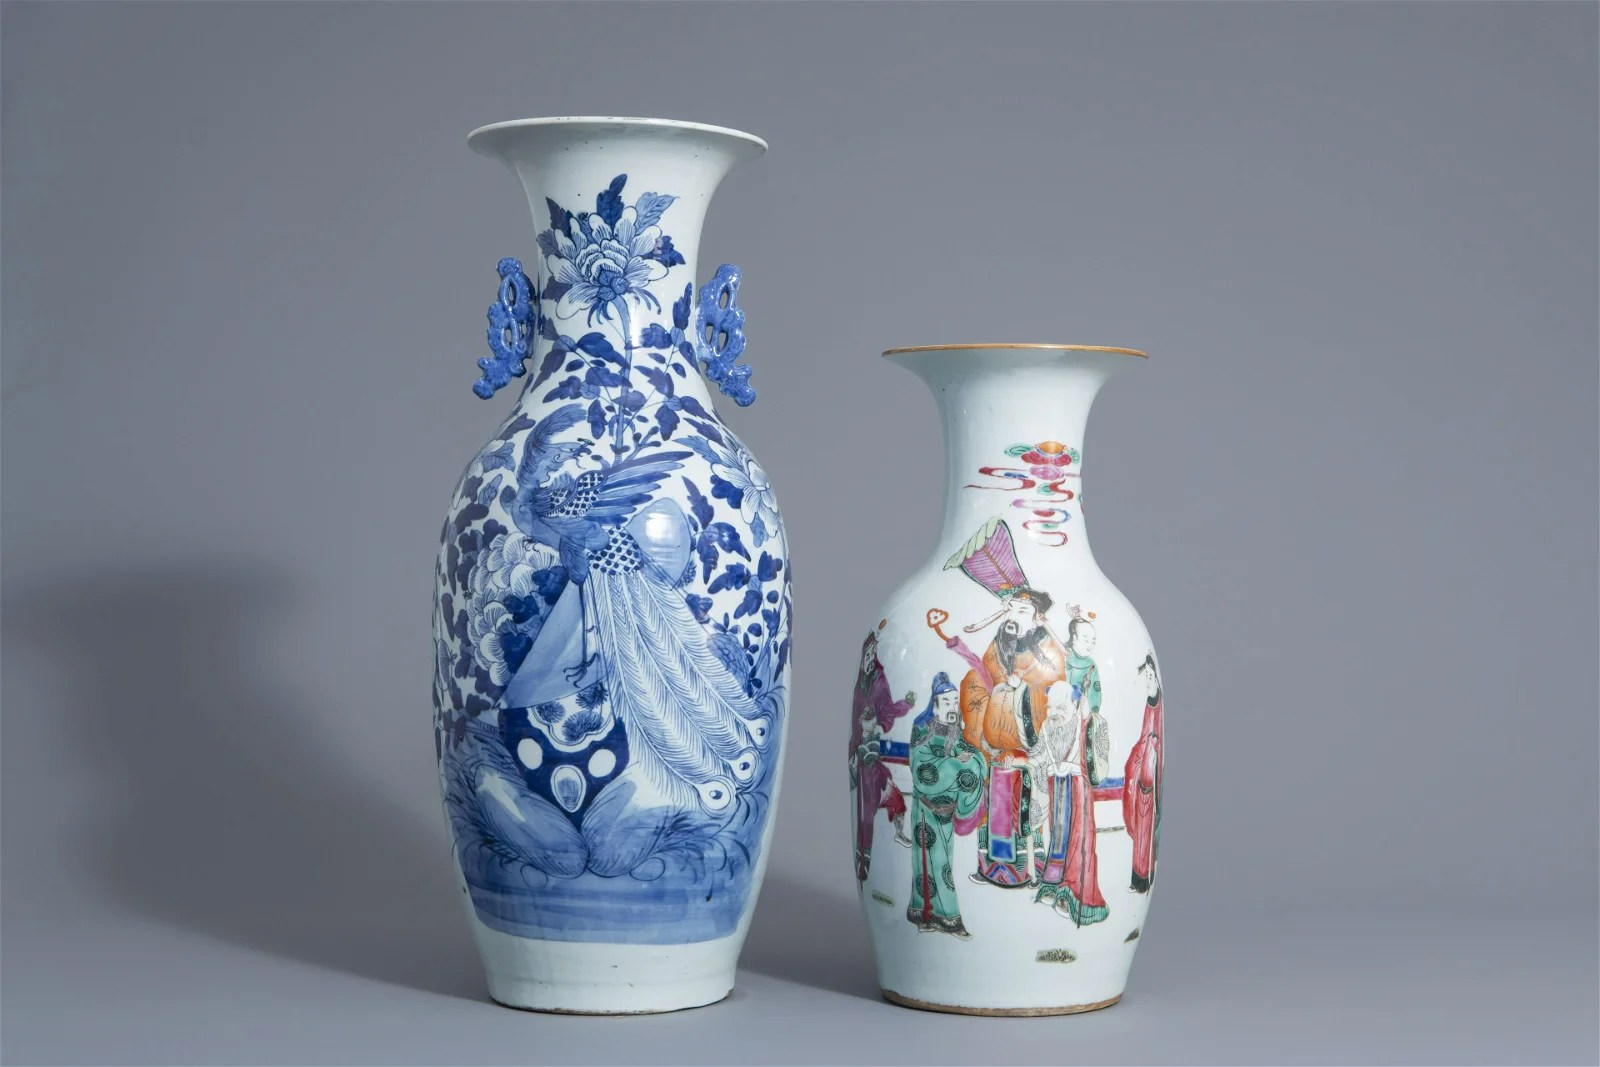 Two Chinese famille rose and blue and white vases with